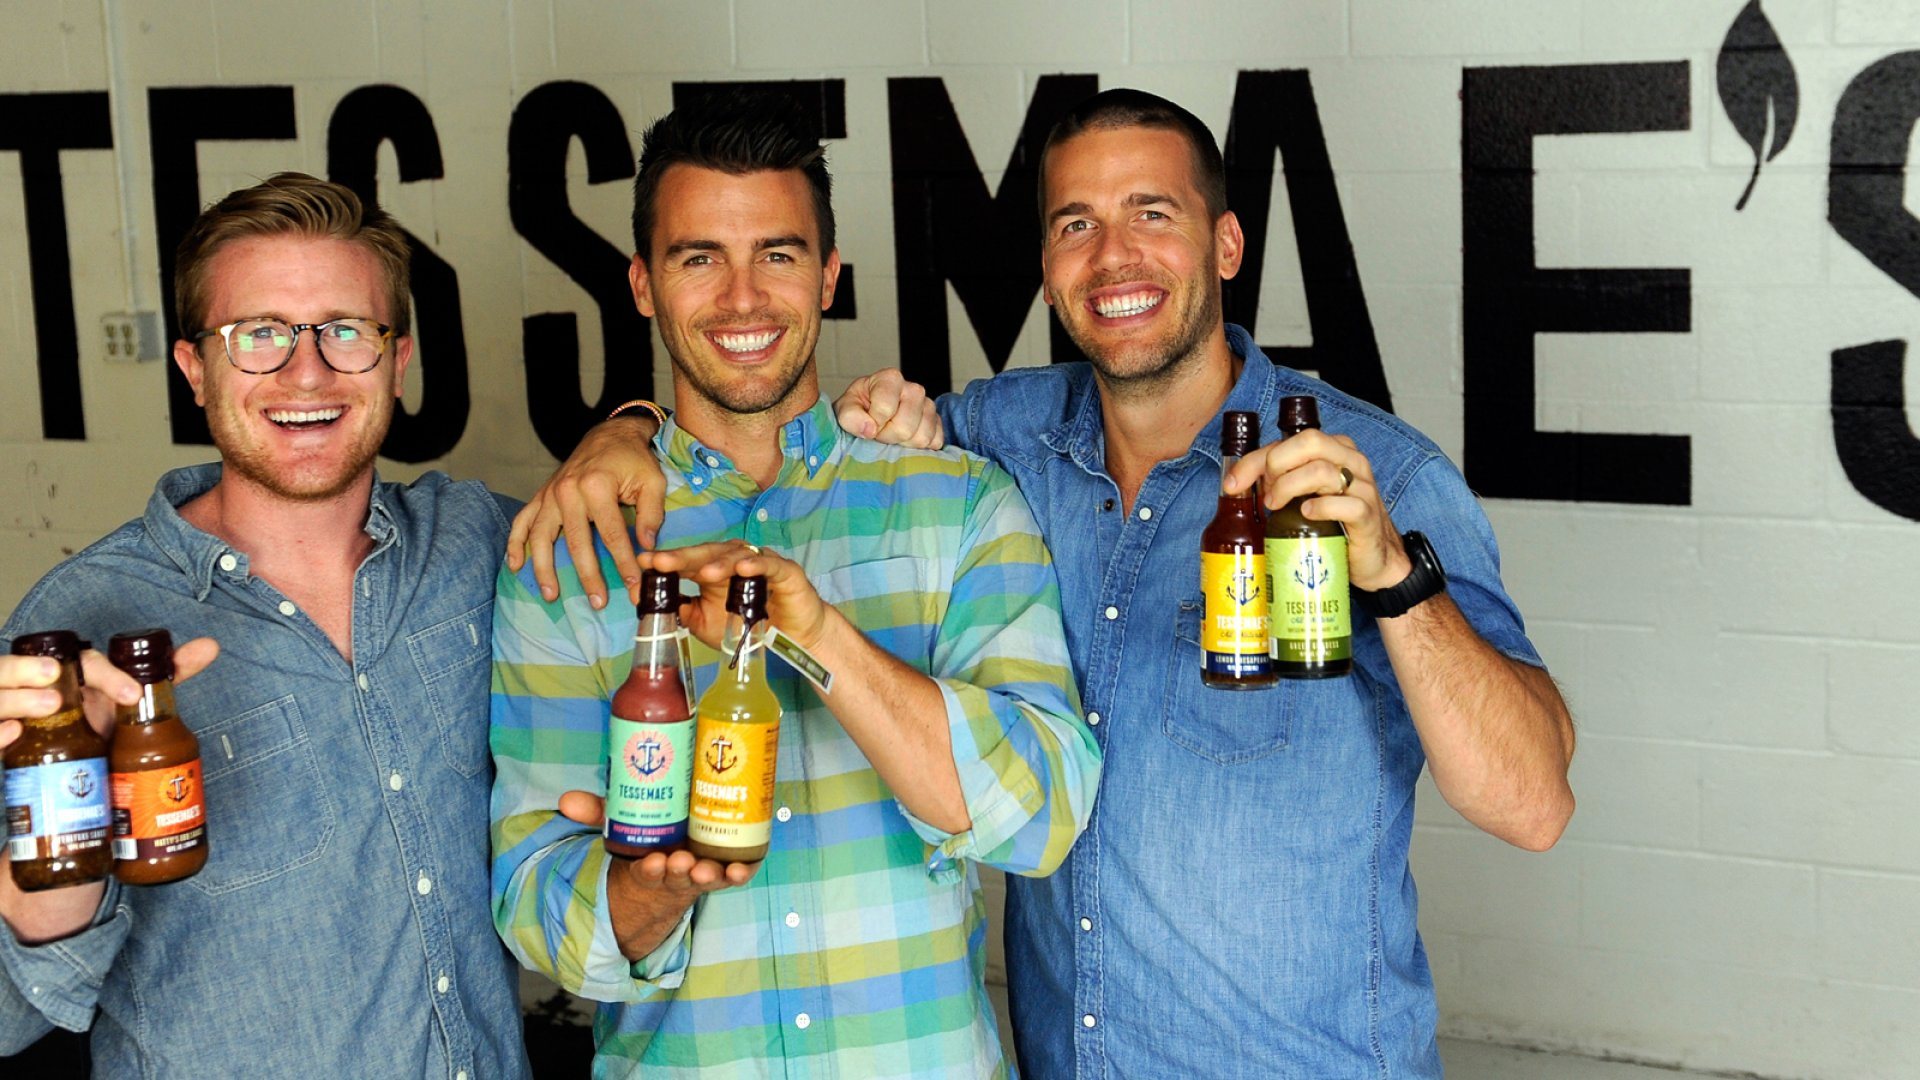 Matthew Vetter, Brian Vetter, and Greg Vetter are dressed for success. They took their mom's salad-dressing recipe and turned it into a multimillion-dollar business and a top seller at Whole Foods. <br> <br>